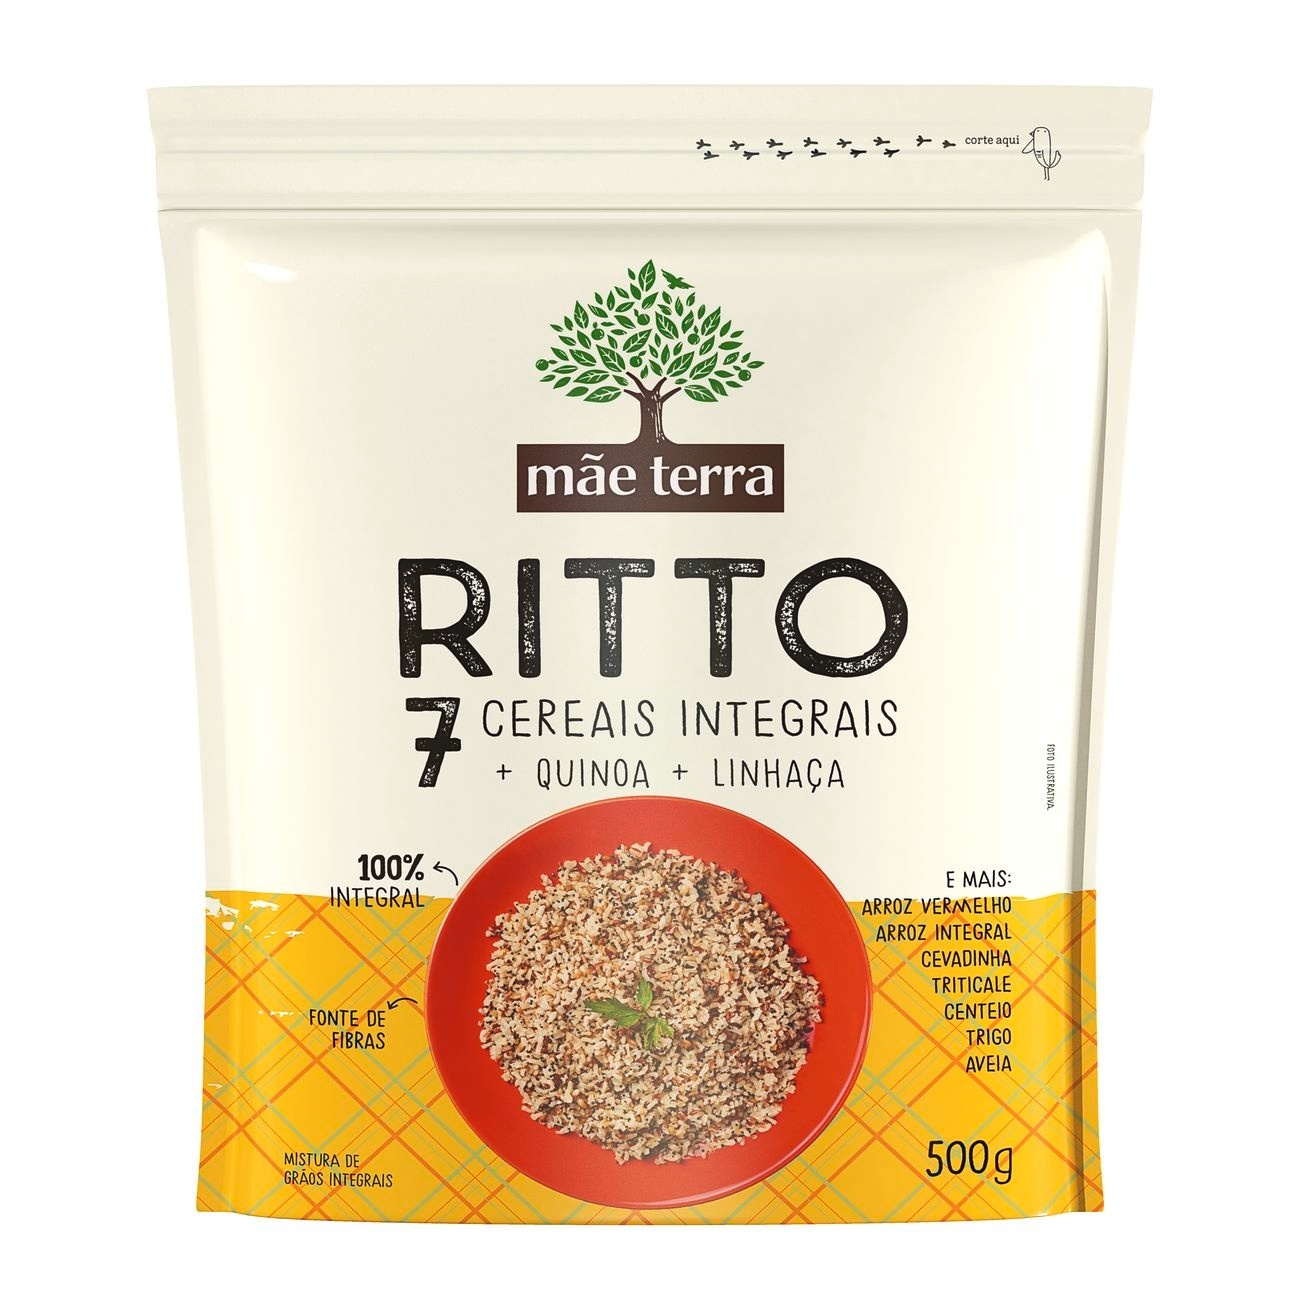 Ritto 7 Cereais Integrais 500g